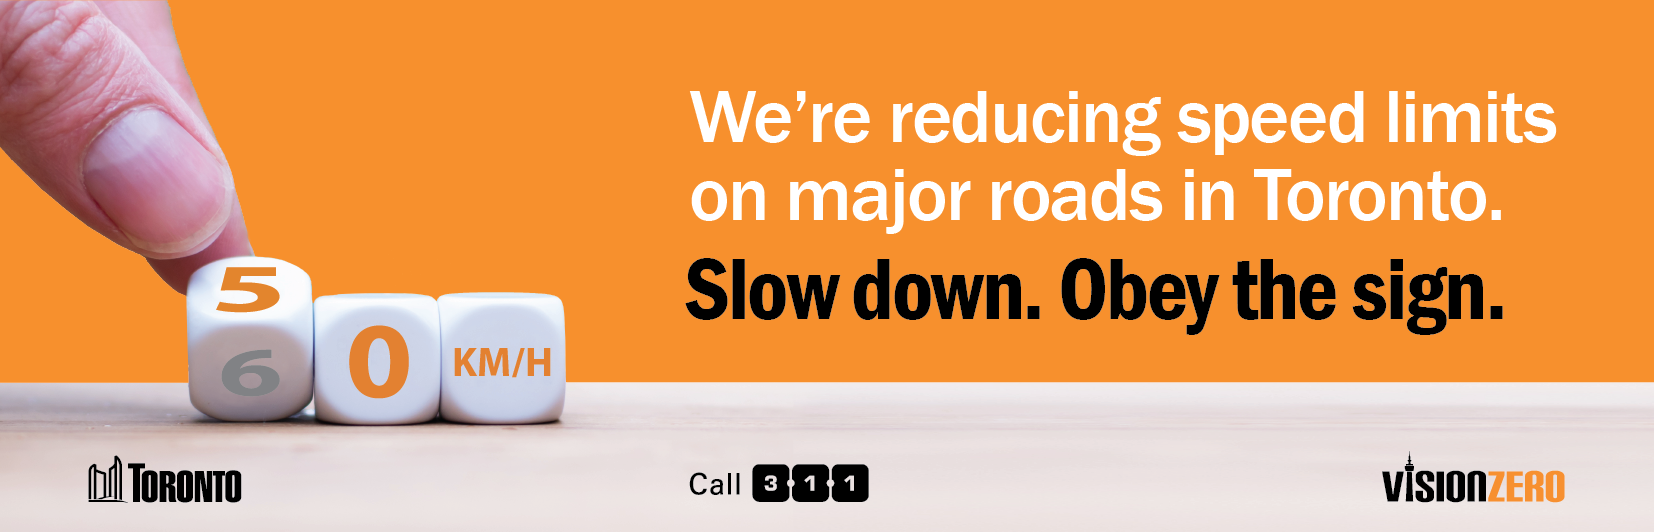 We're reducing speed limits on major roads in Toronto. Slow down. Obey the sign.